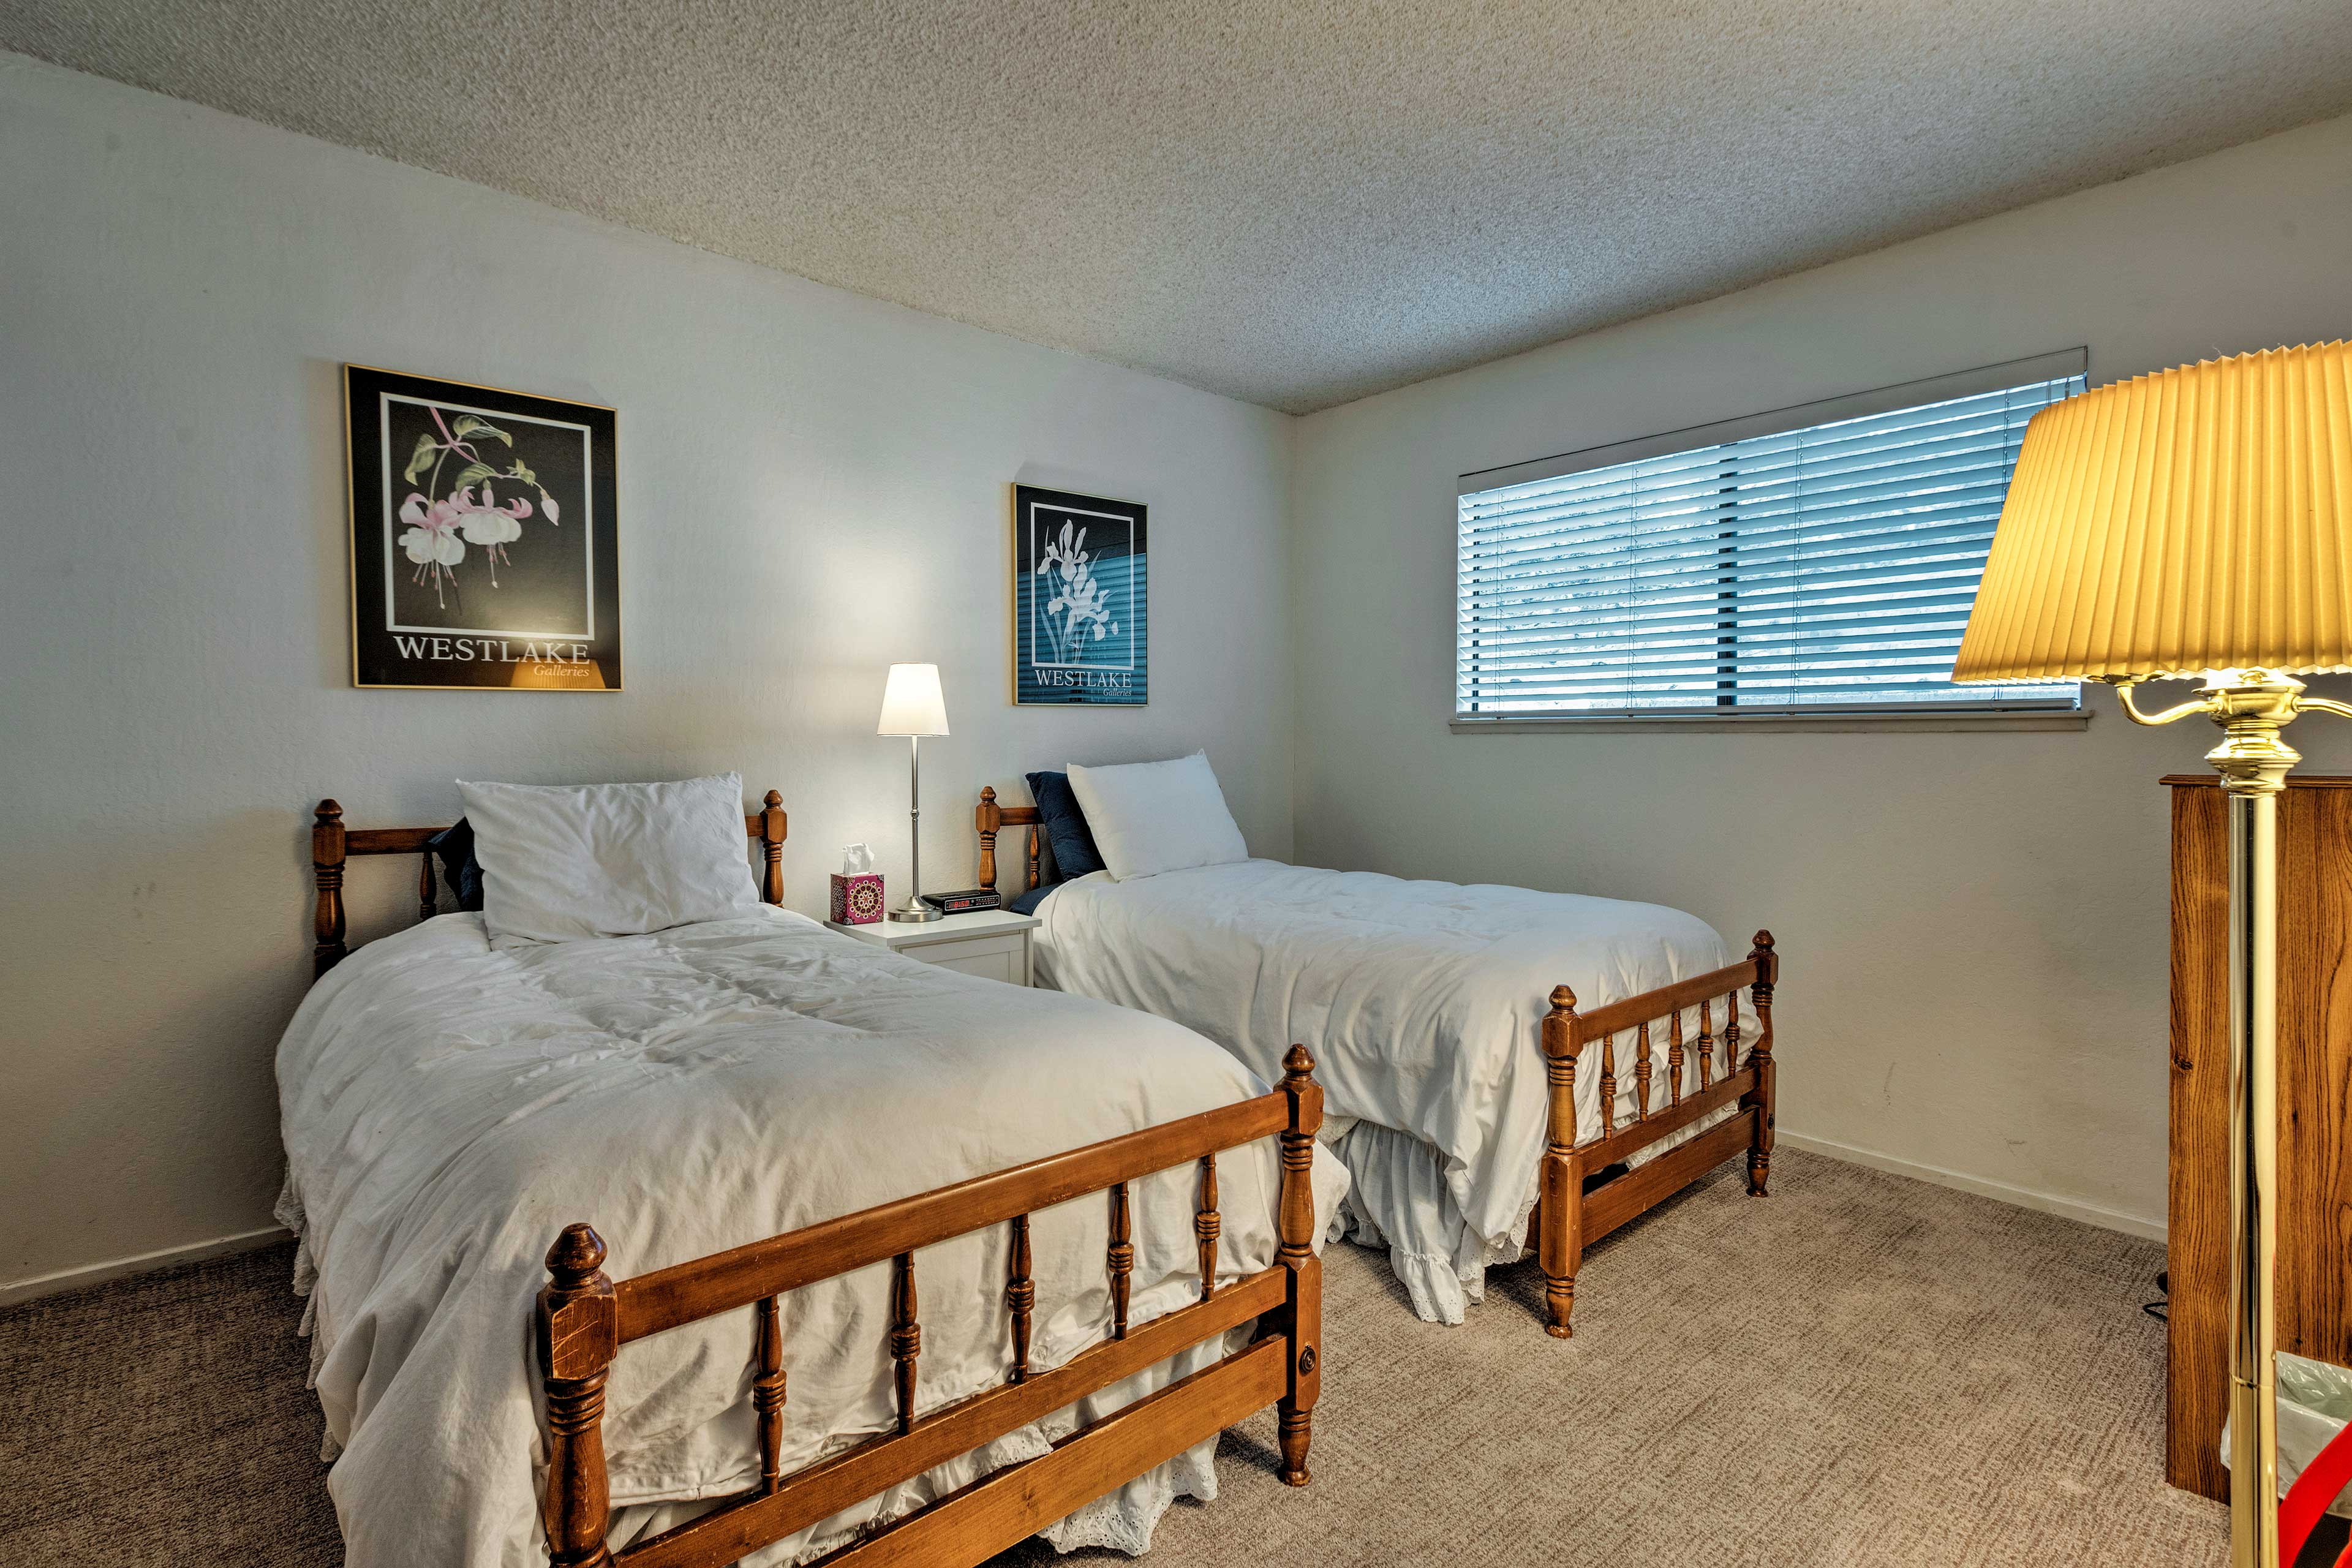 This room includes 2 twin beds.